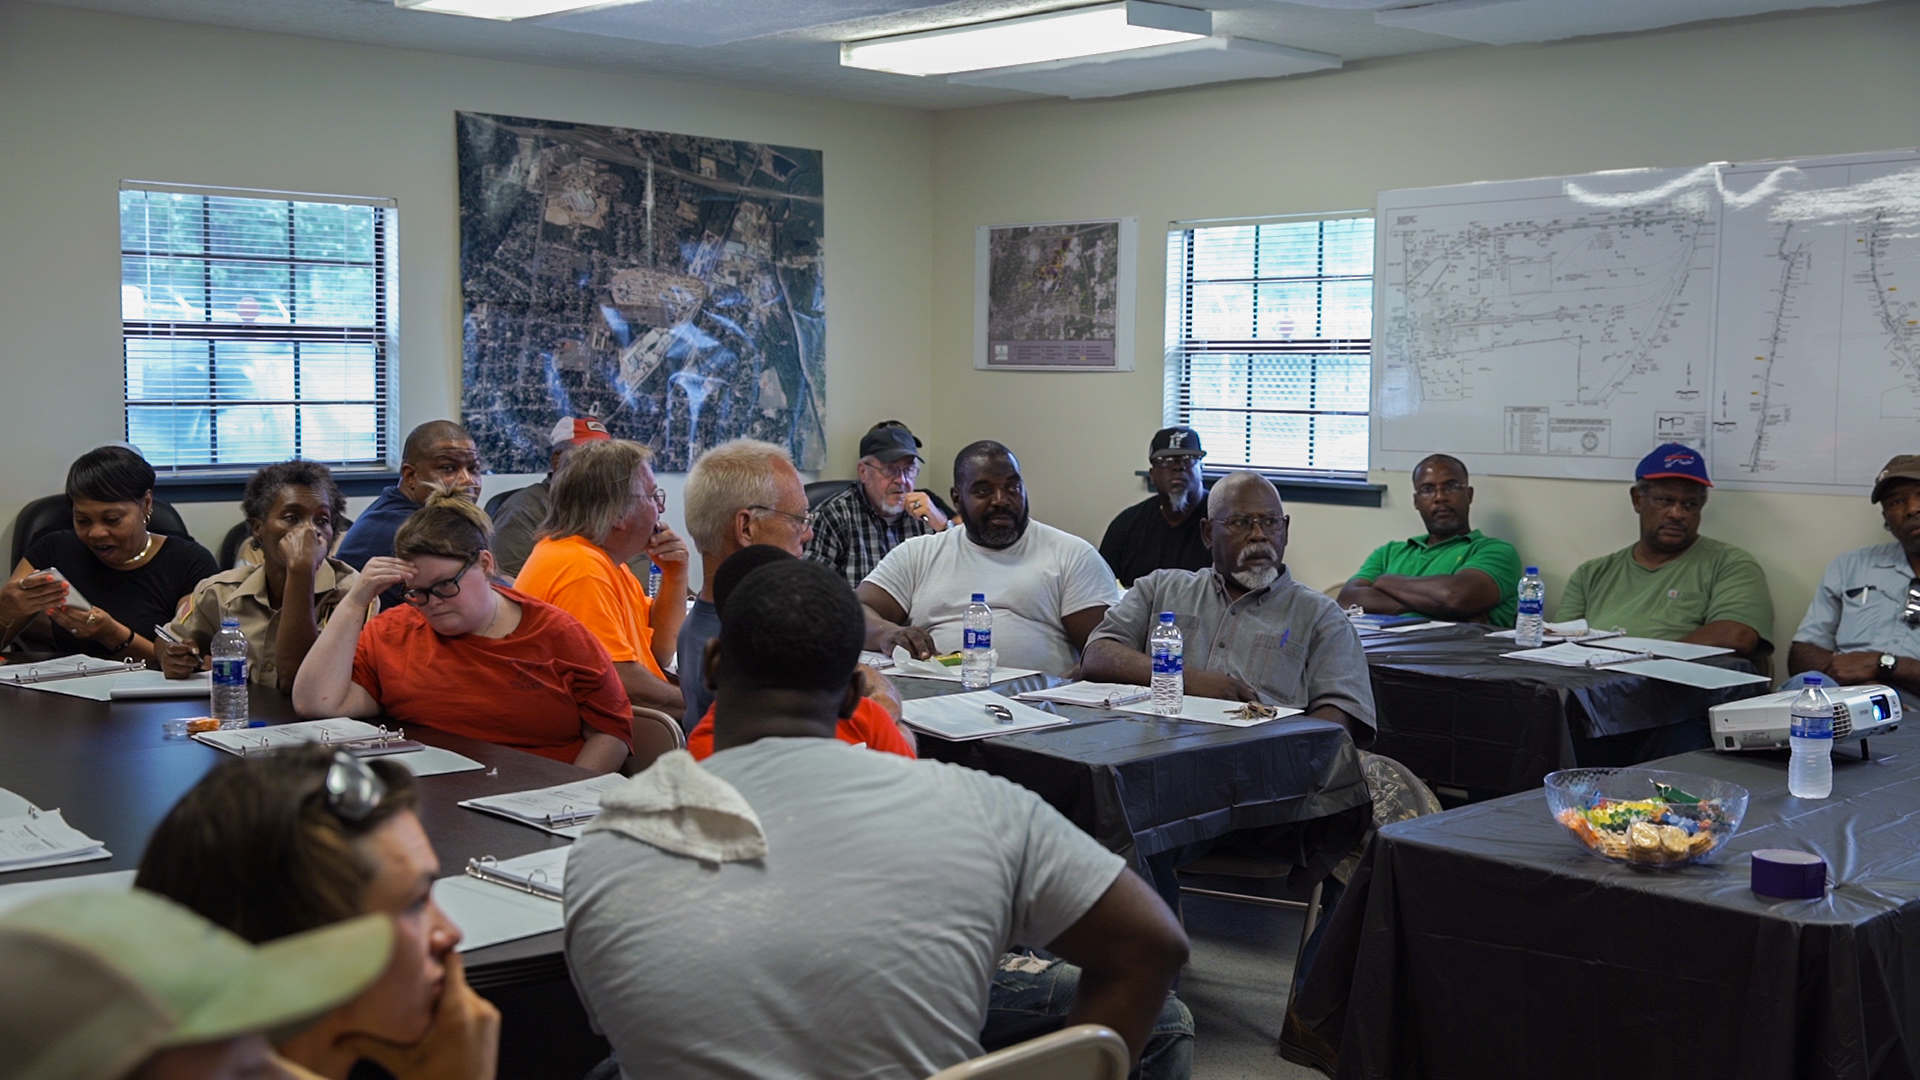 Individuals receive special training at the Site's Community Resource Building as part of the Pine Yard removal action project.